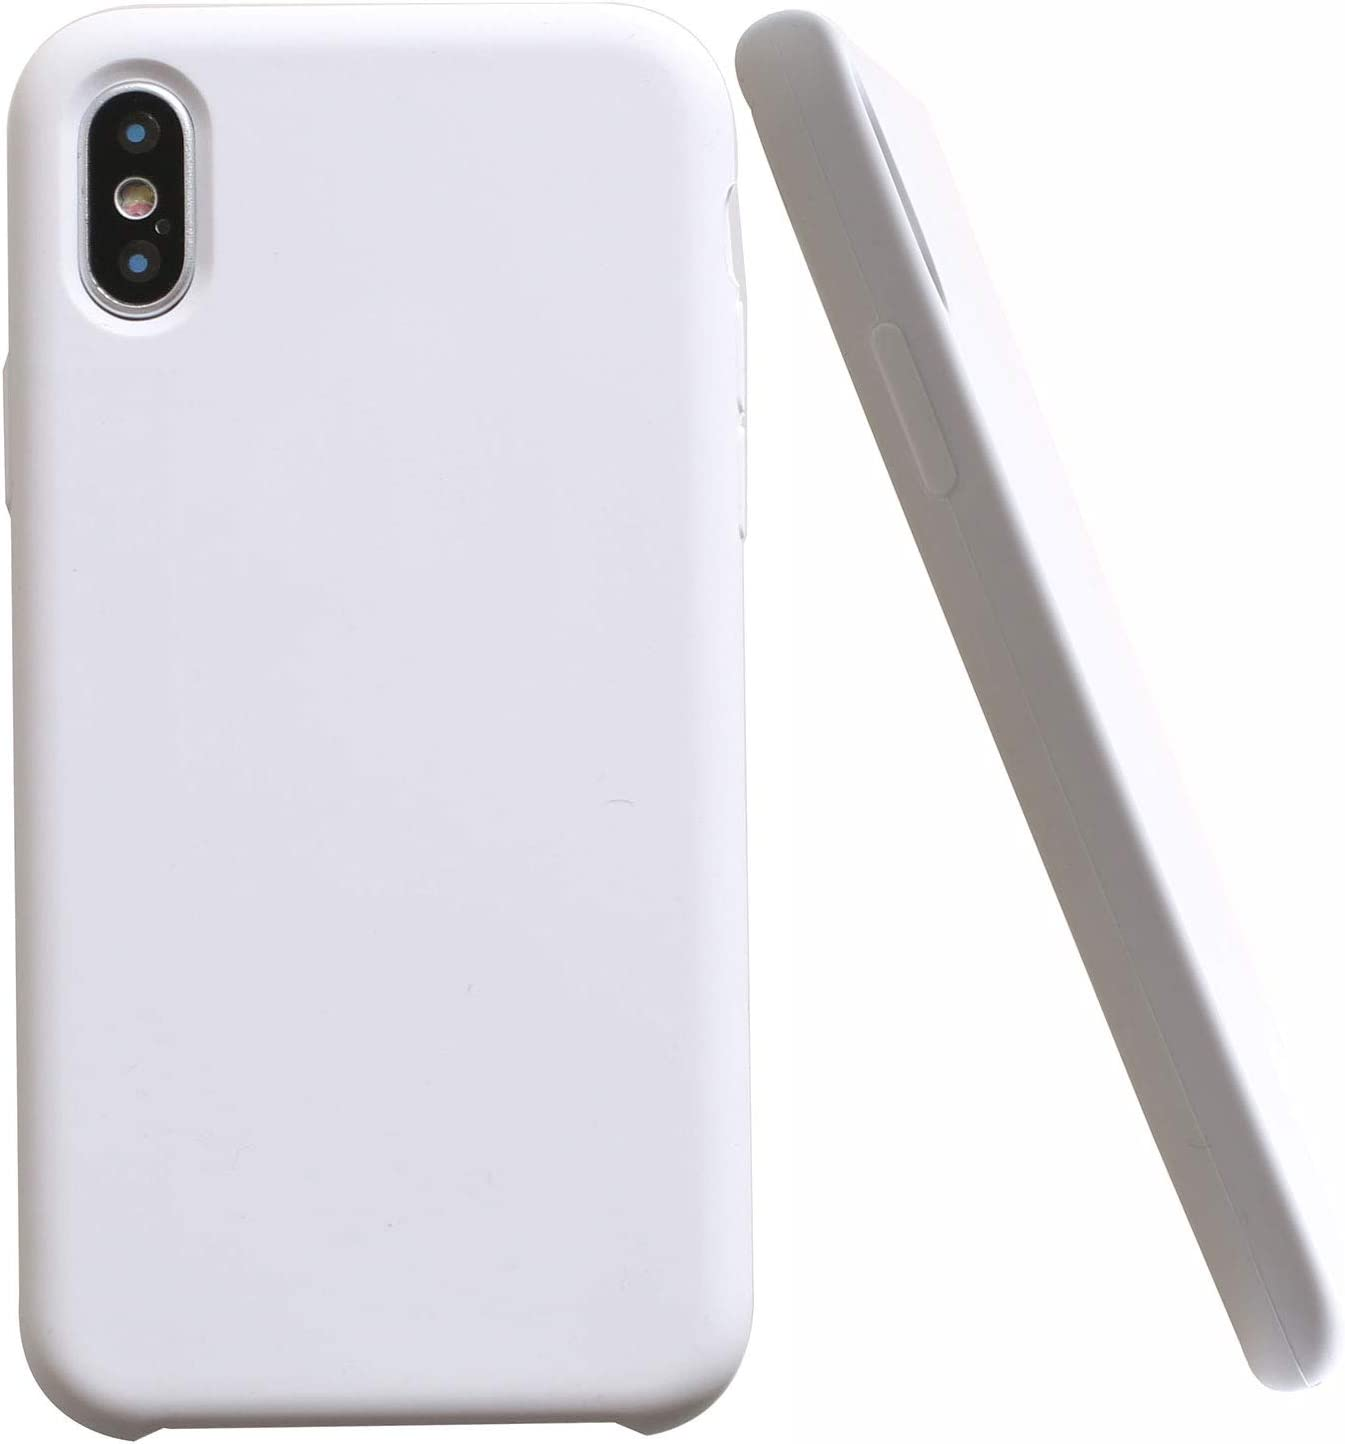 Soft Liquid Silicone iPhone X Cover Case Inner Soft Microfiber Cloth Lining Cushion for Apple iPhone X/10 5.8inch (White)